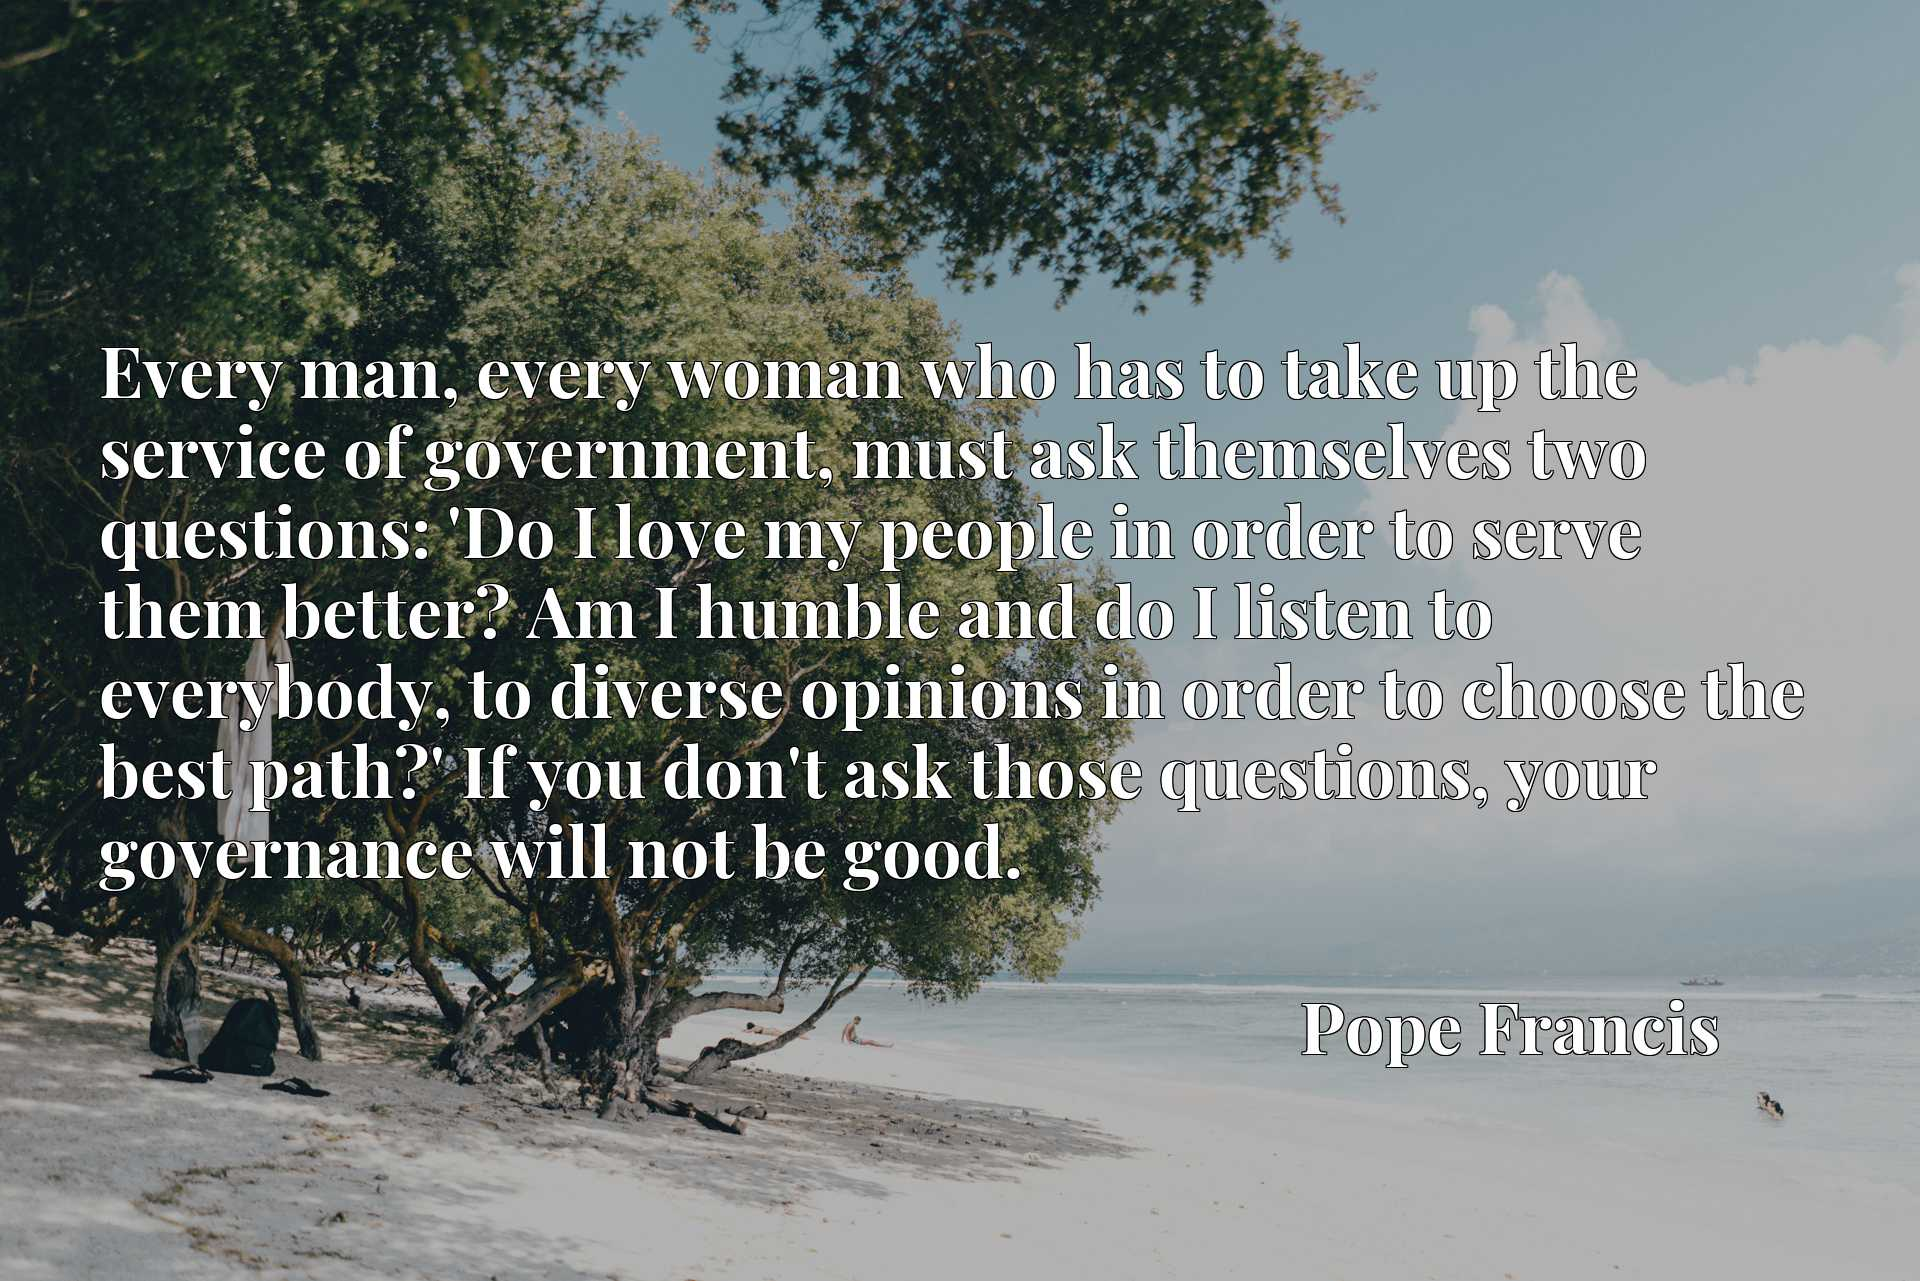 Every man, every woman who has to take up the service of government, must ask themselves two questions: 'Do I love my people in order to serve them better? Am I humble and do I listen to everybody, to diverse opinions in order to choose the best path?' If you don't ask those questions, your governance will not be good.